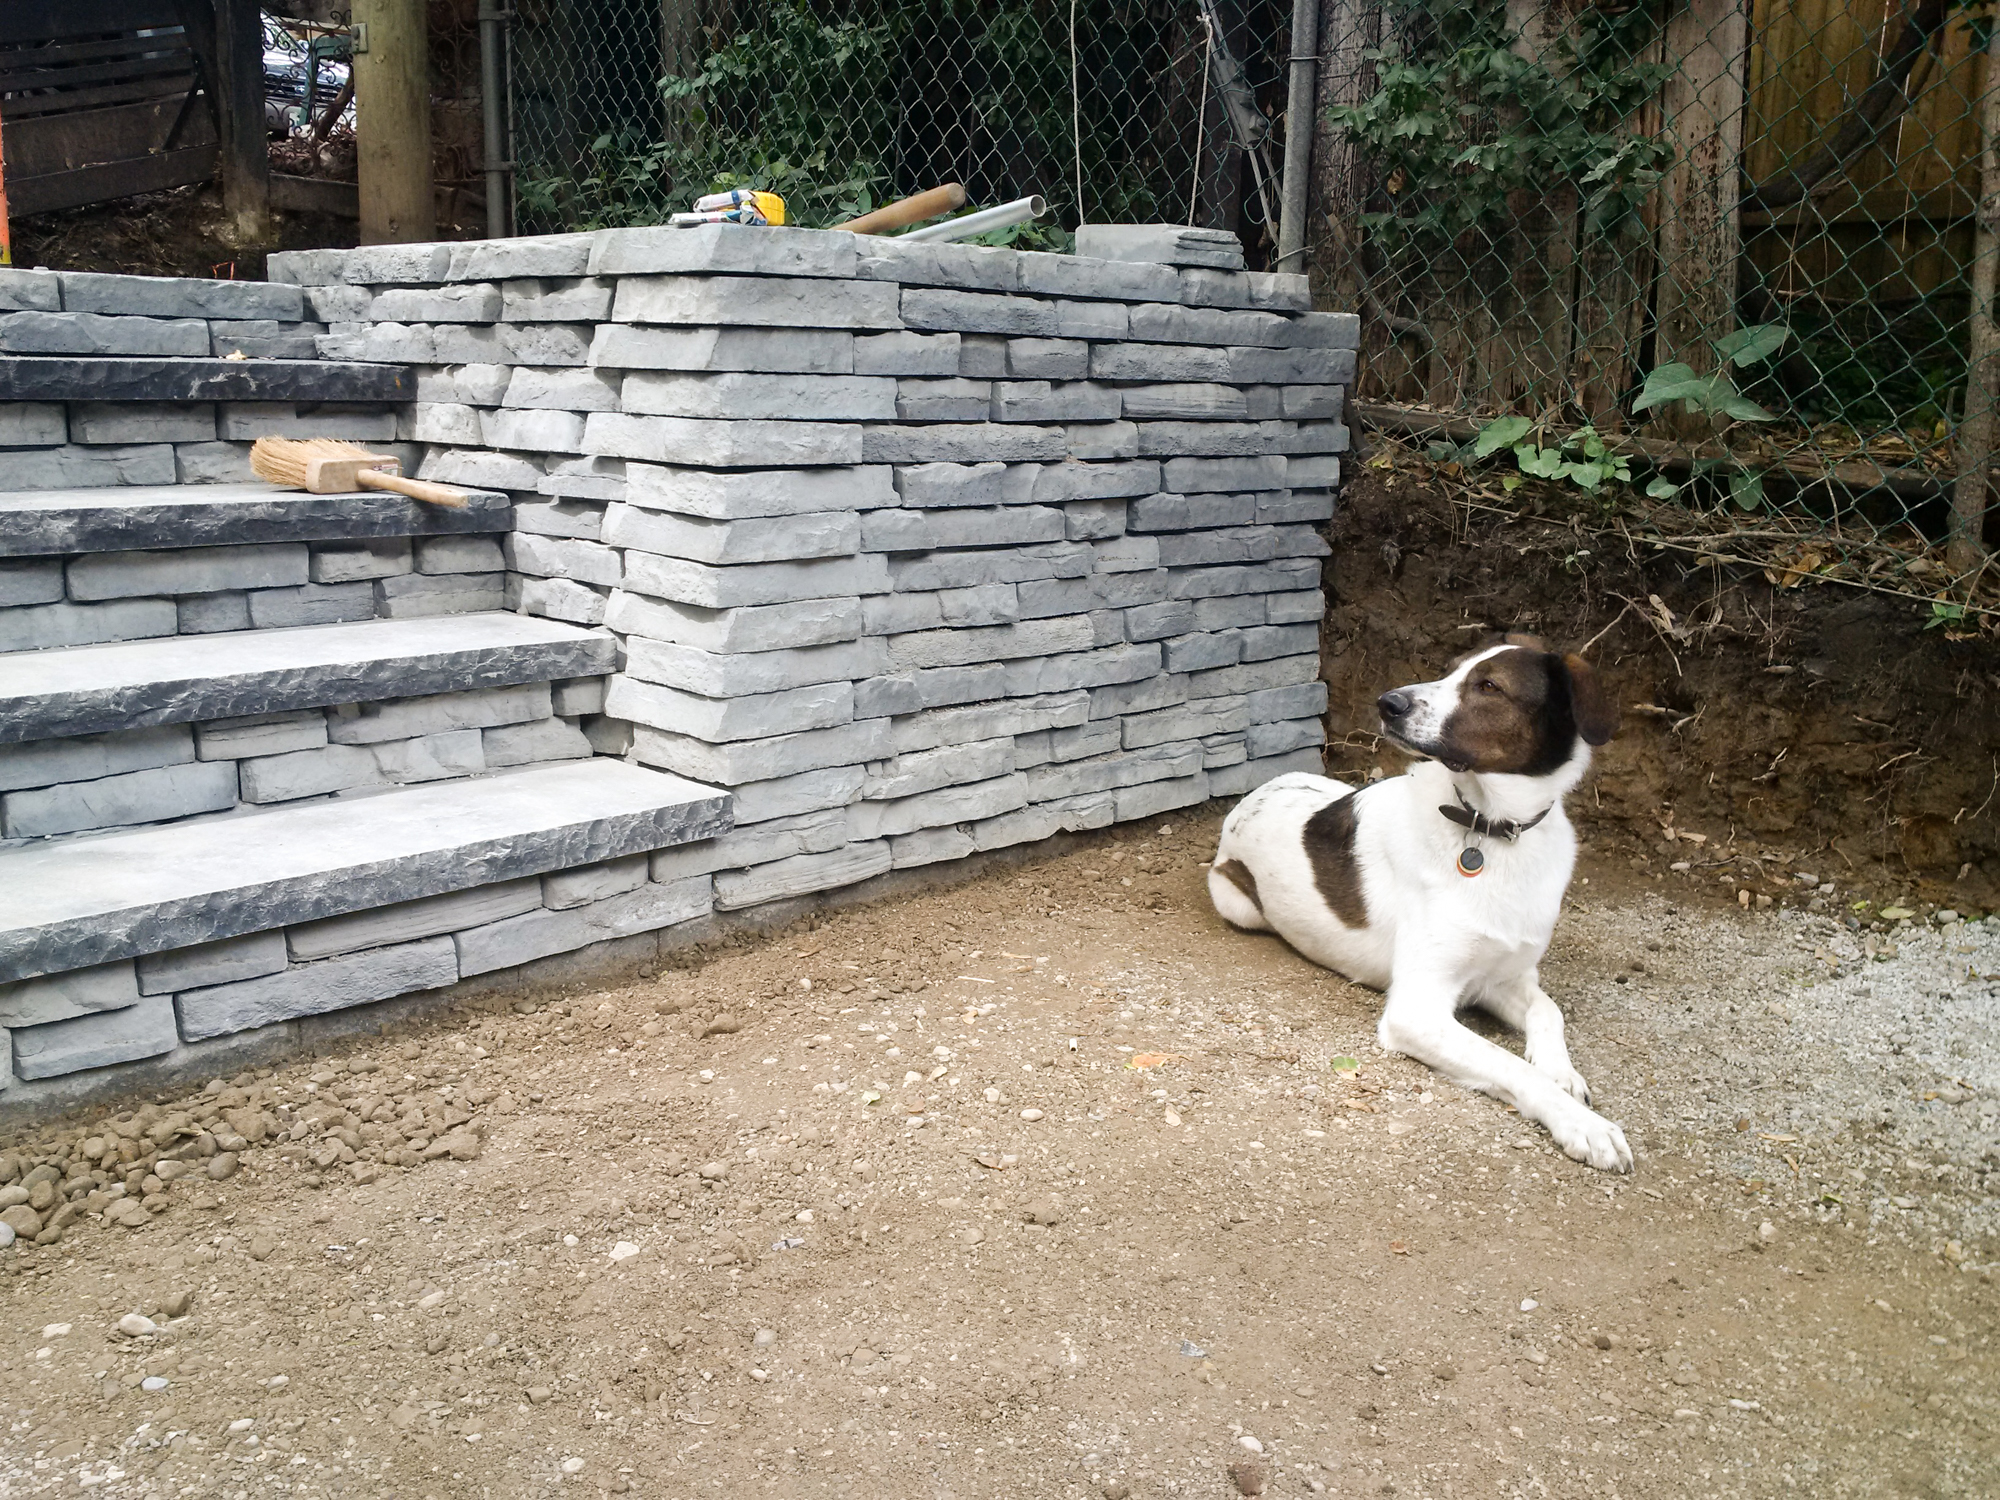 Supervisor inspecting the new wall